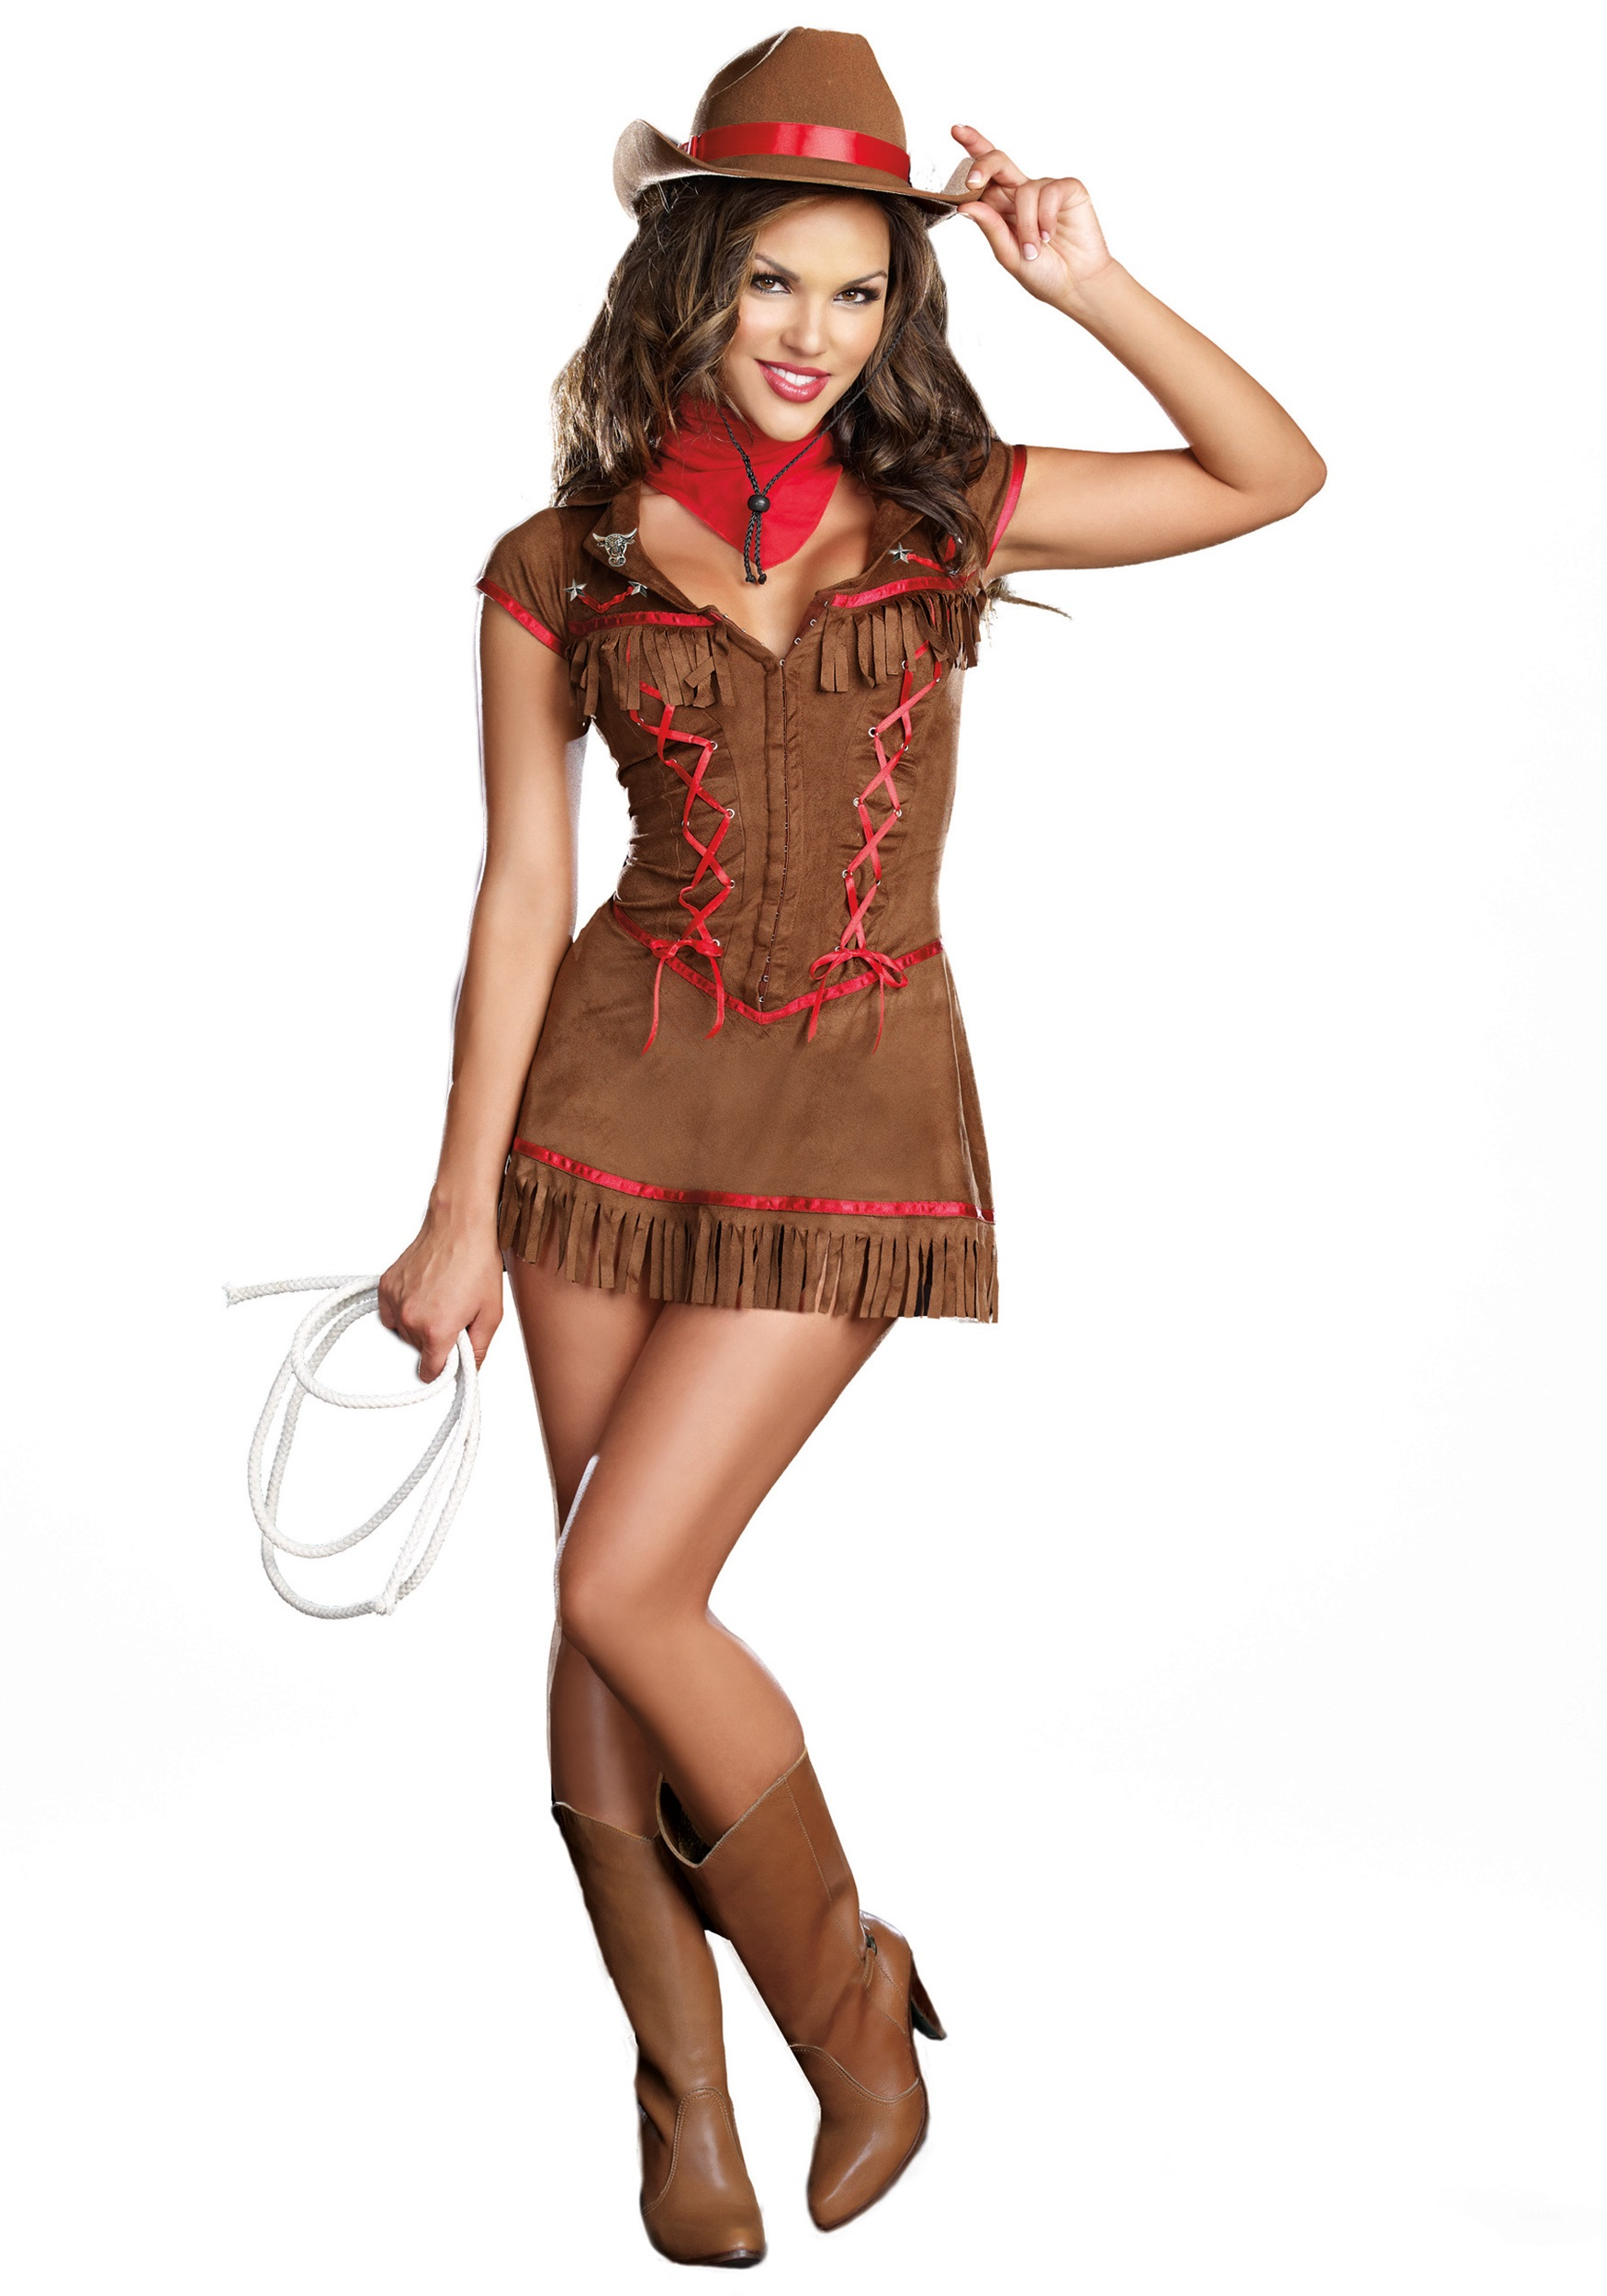 Sexy lingerie for women: The Hottest cowgirl on the ranch costume